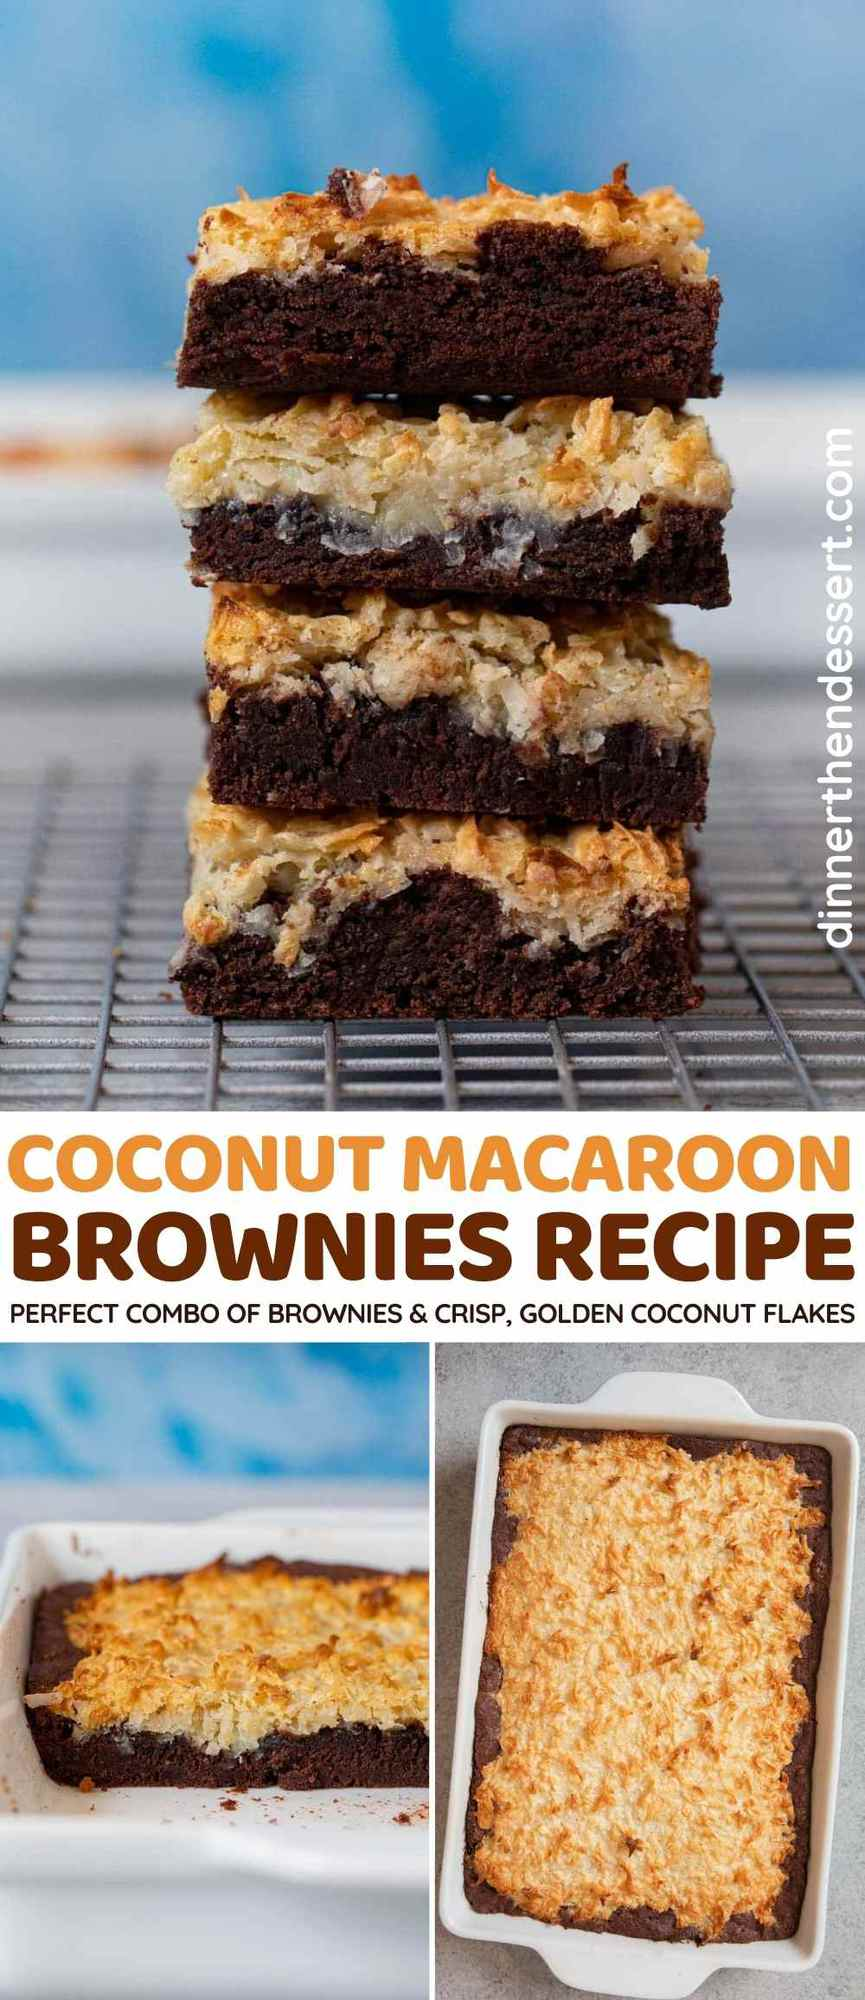 Coconut Macaroon Brownies collage